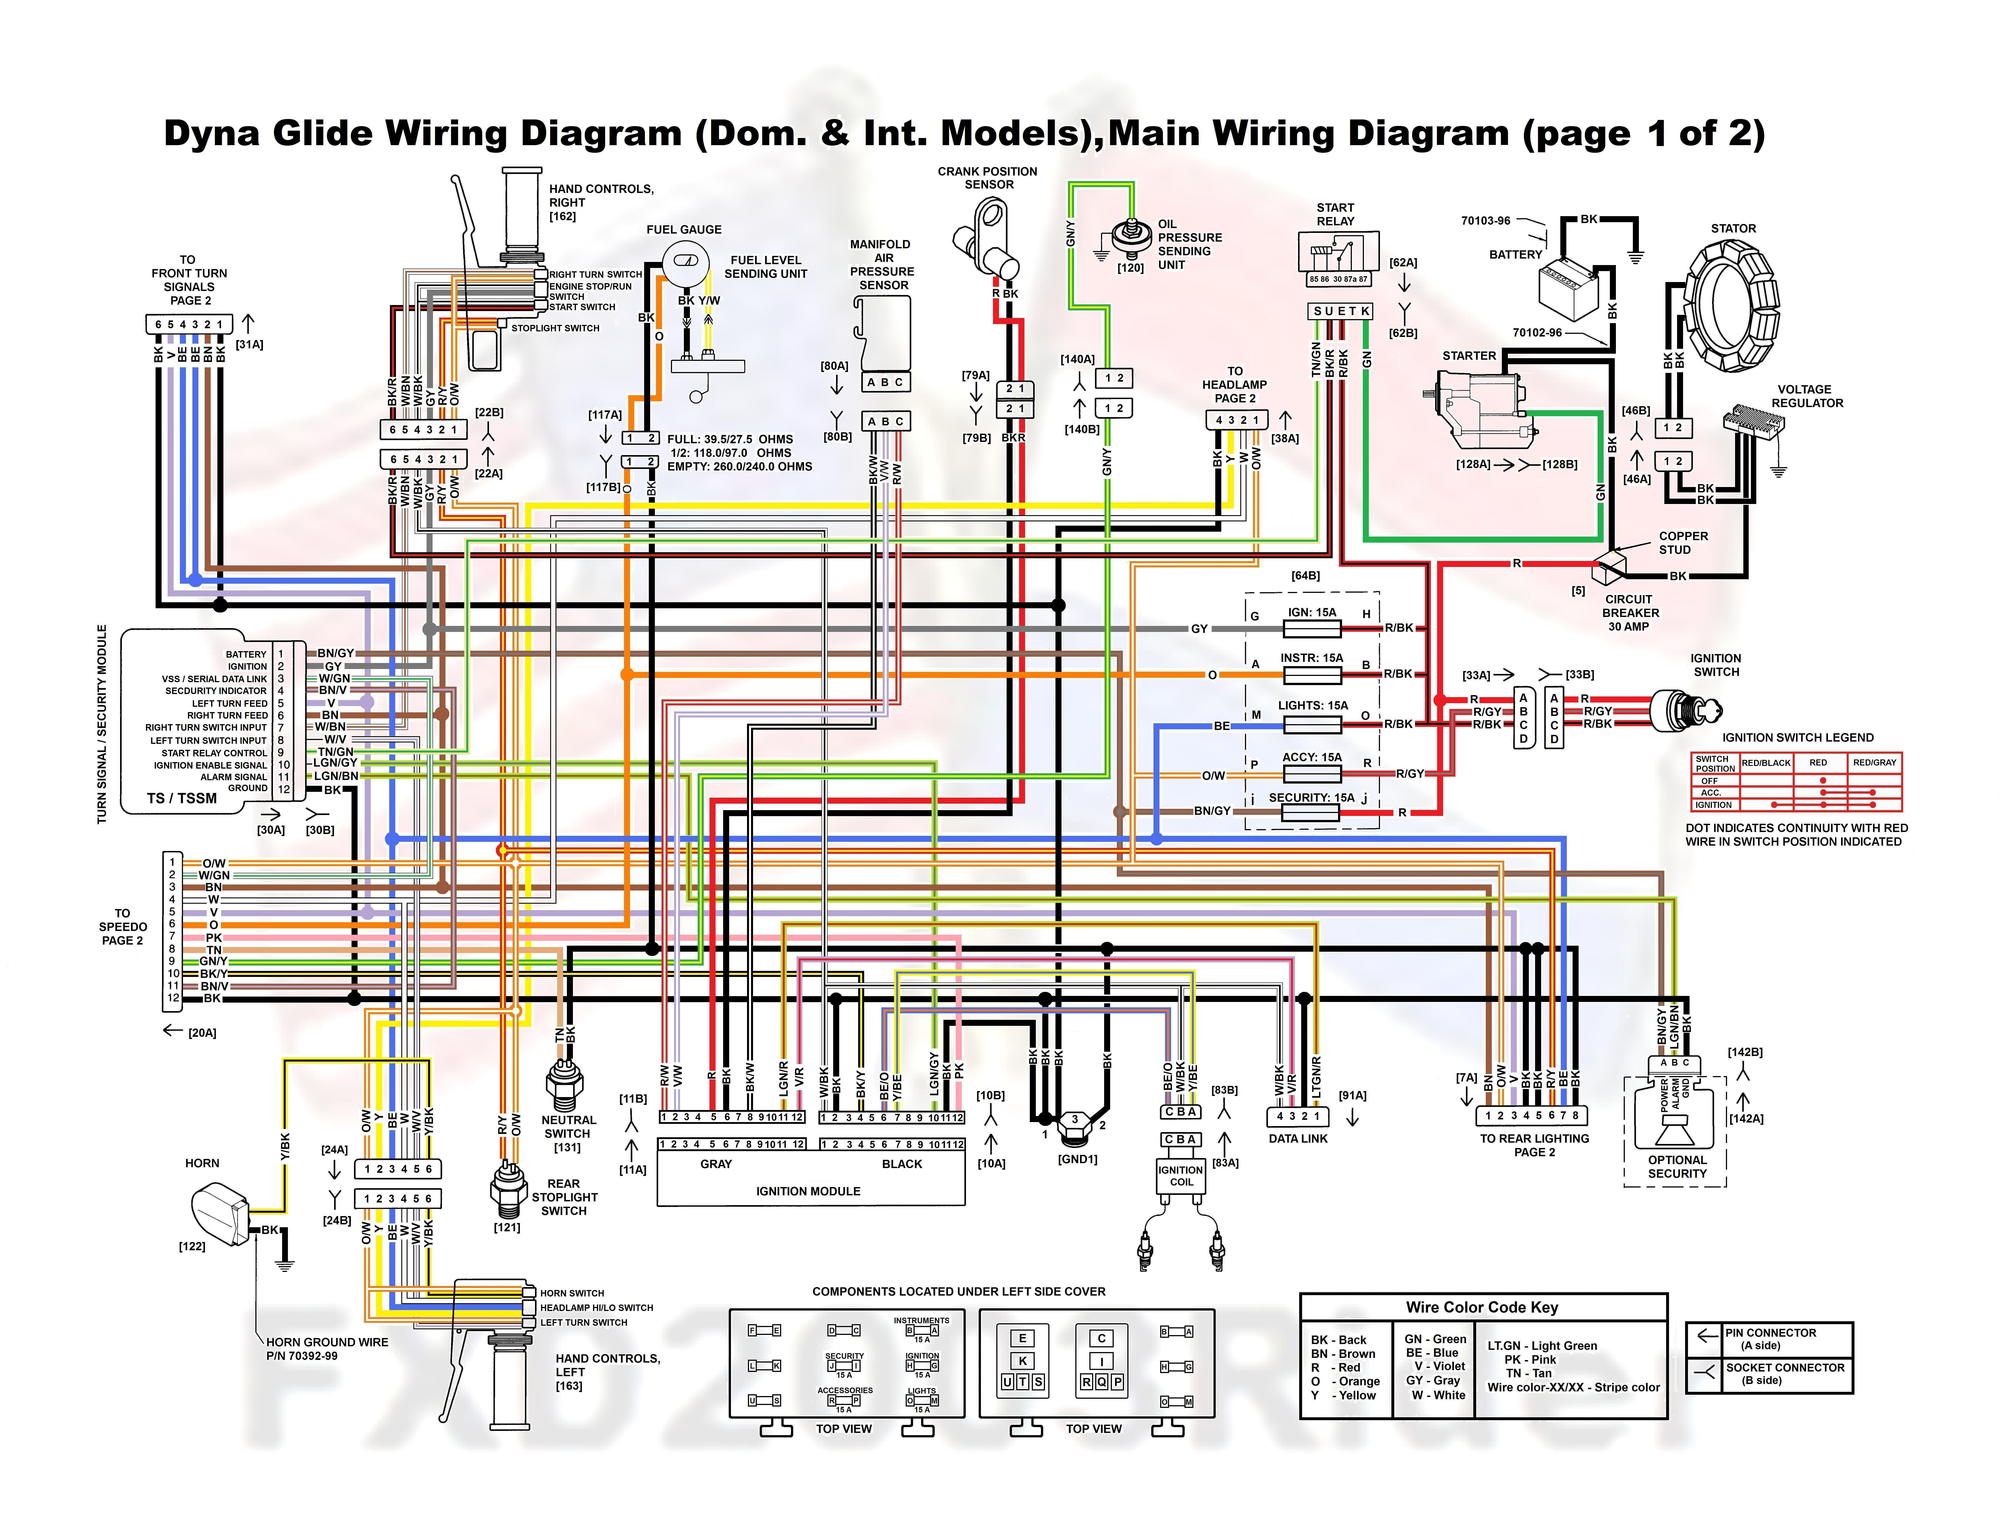 Air Suspension Switch Wiring Diagram Ride For Motorcycle Not Lossing Fuse Question Harley Davidson Forums Pressure